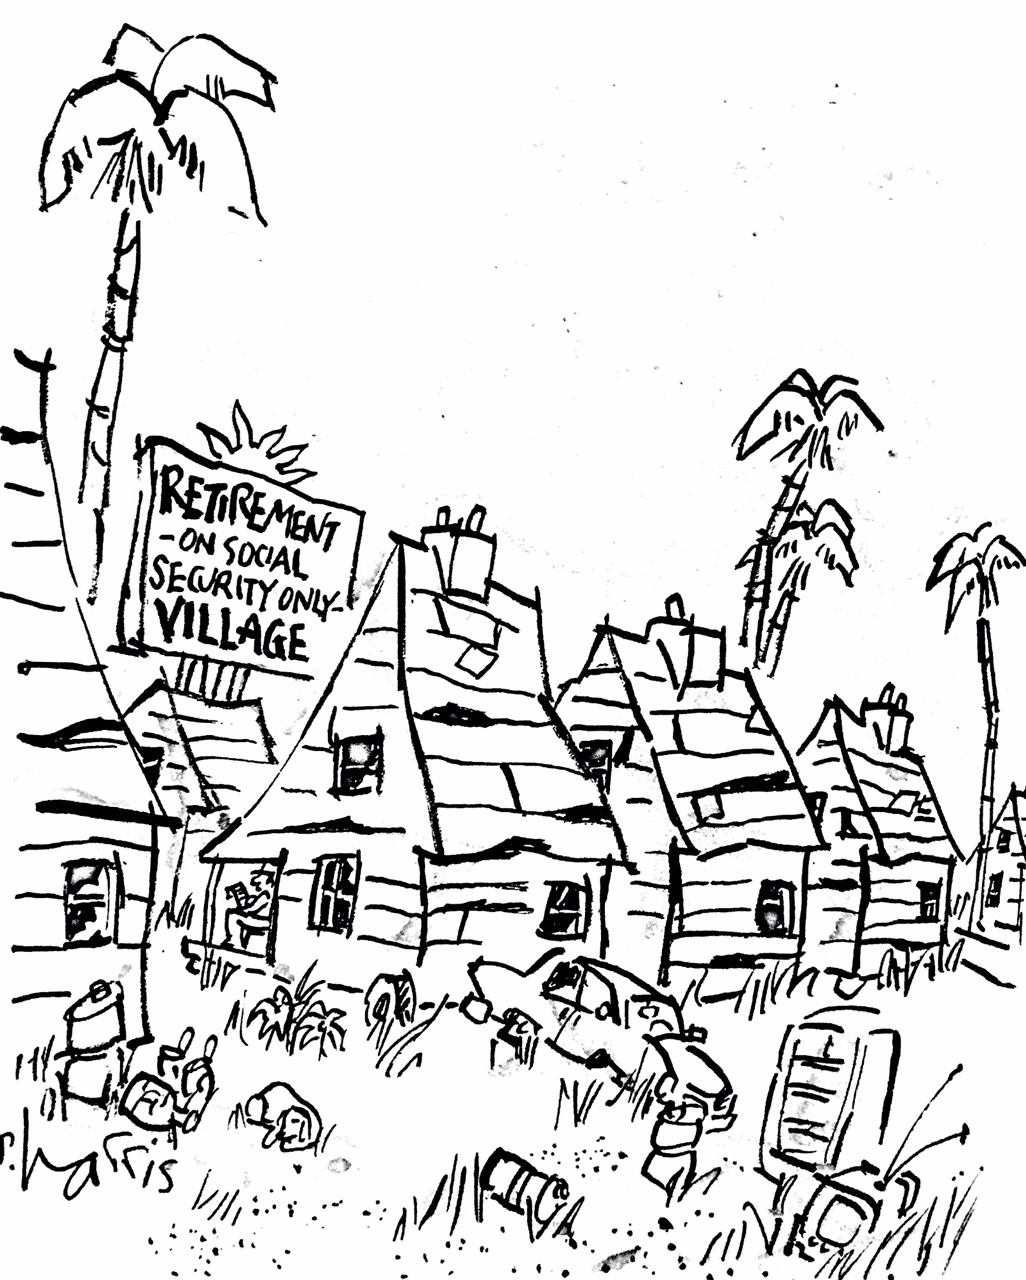 Retirement Village … On Social Security Only